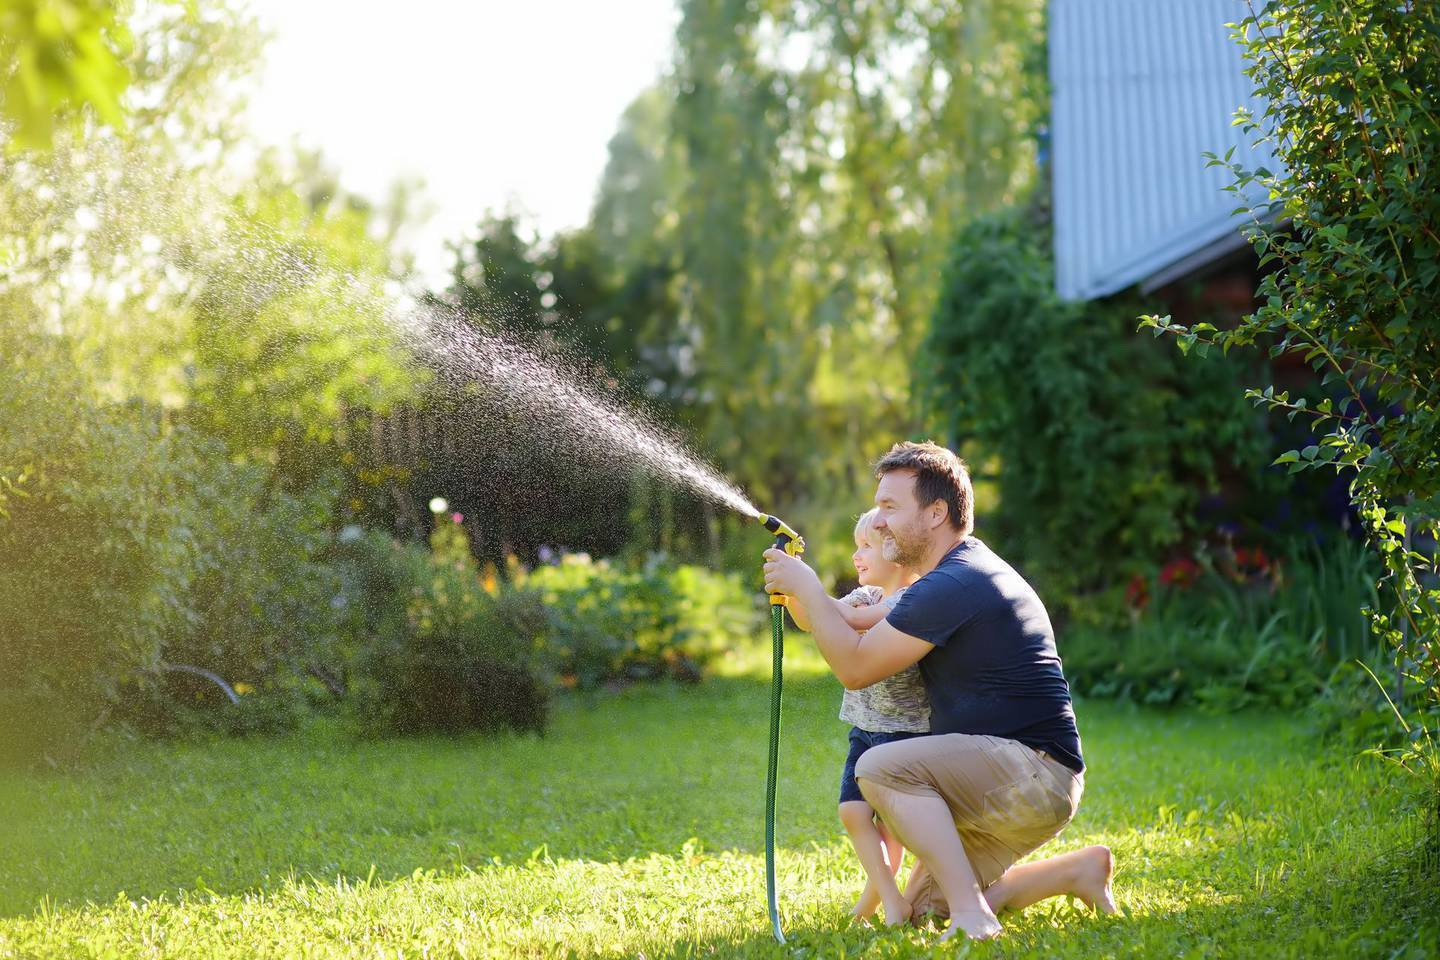 At present Aucklanders can use a hose with a nozzle to water the garden but not sprinklers. Photo / File